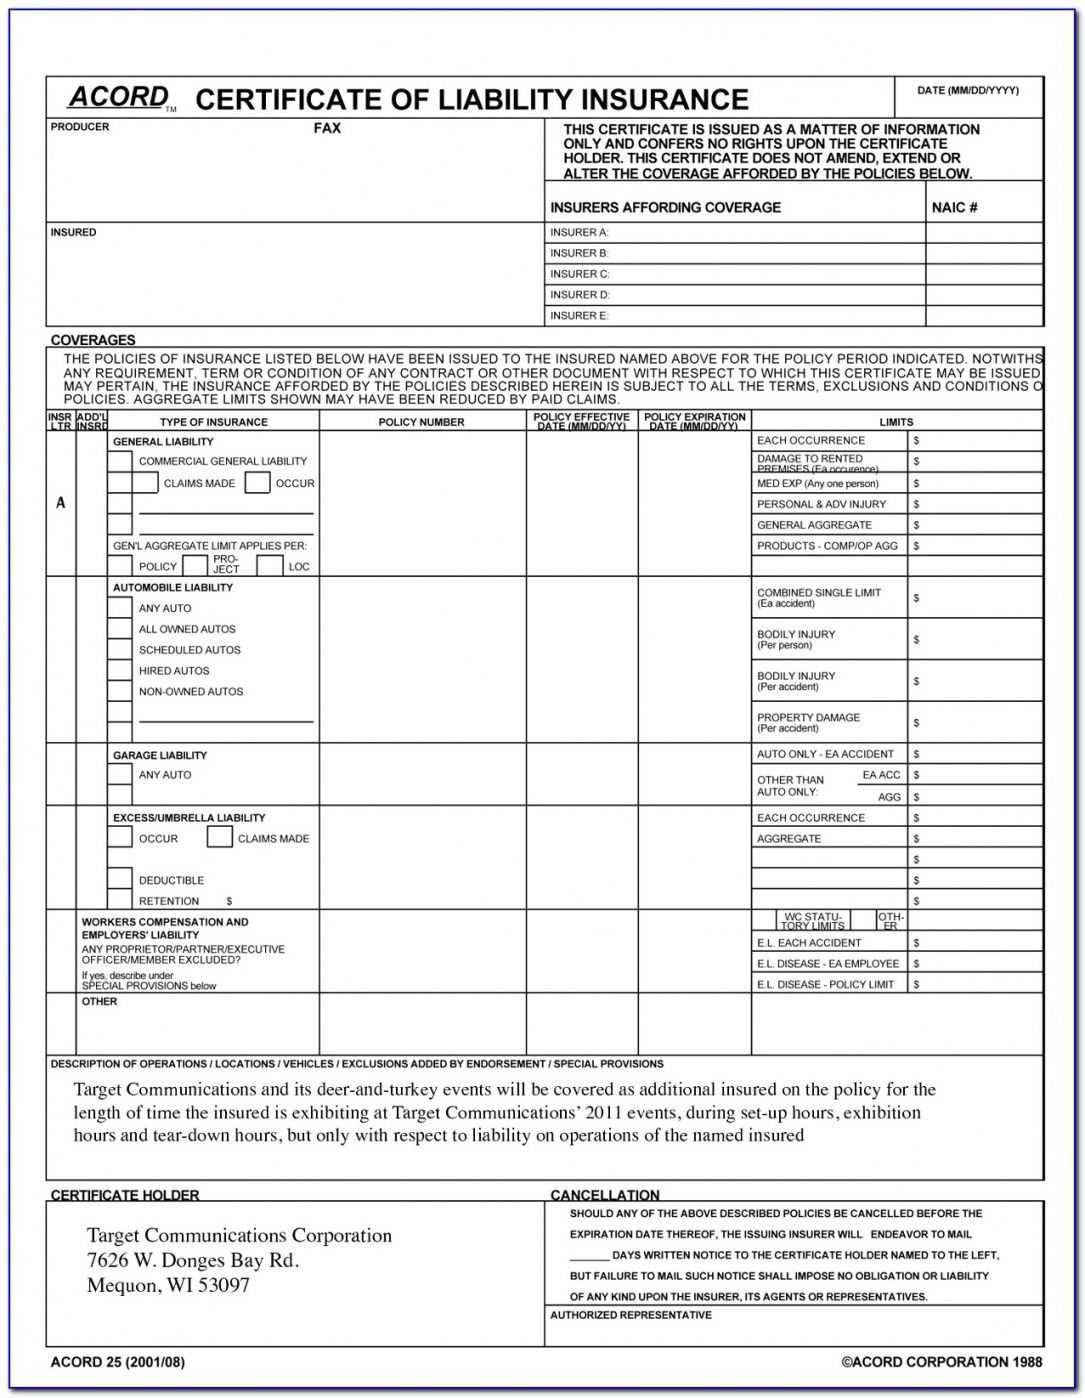 Accord Certificate Of Liability Insurance Form For Acord Insurance Certificate Template